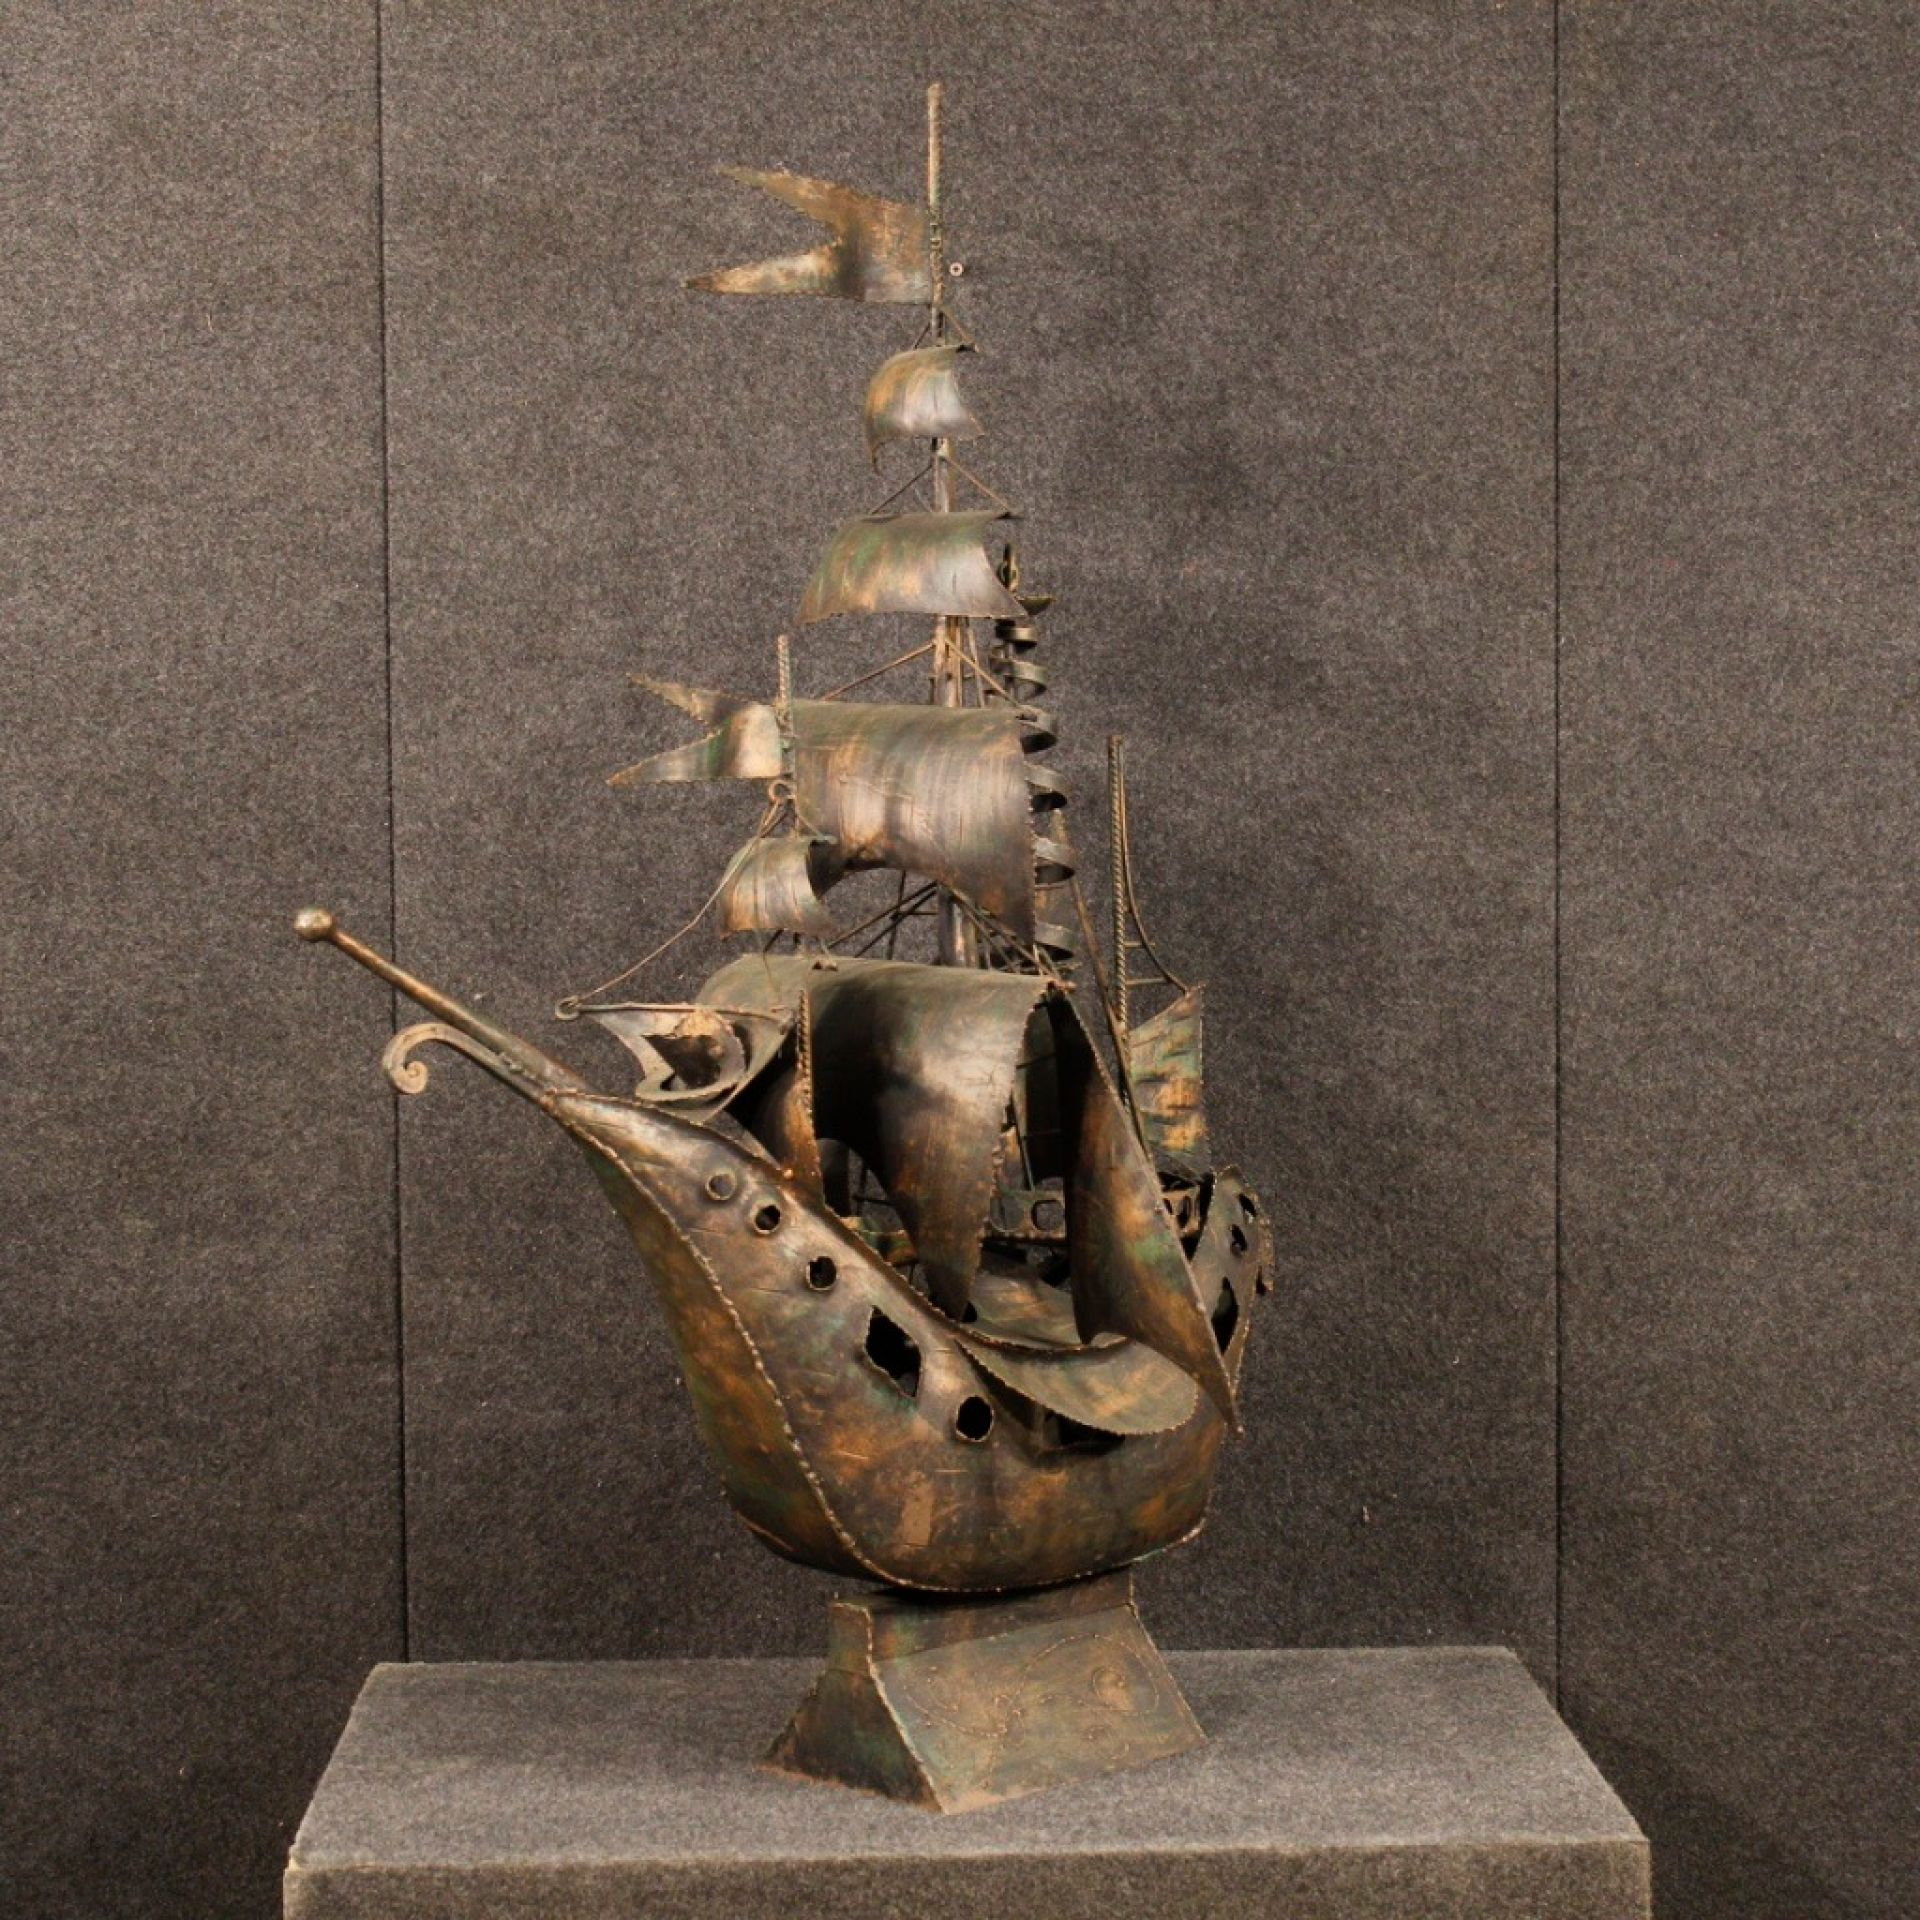 20th Century Copper-Colored Metal Italian Sailing Ship Sculpture, 1970